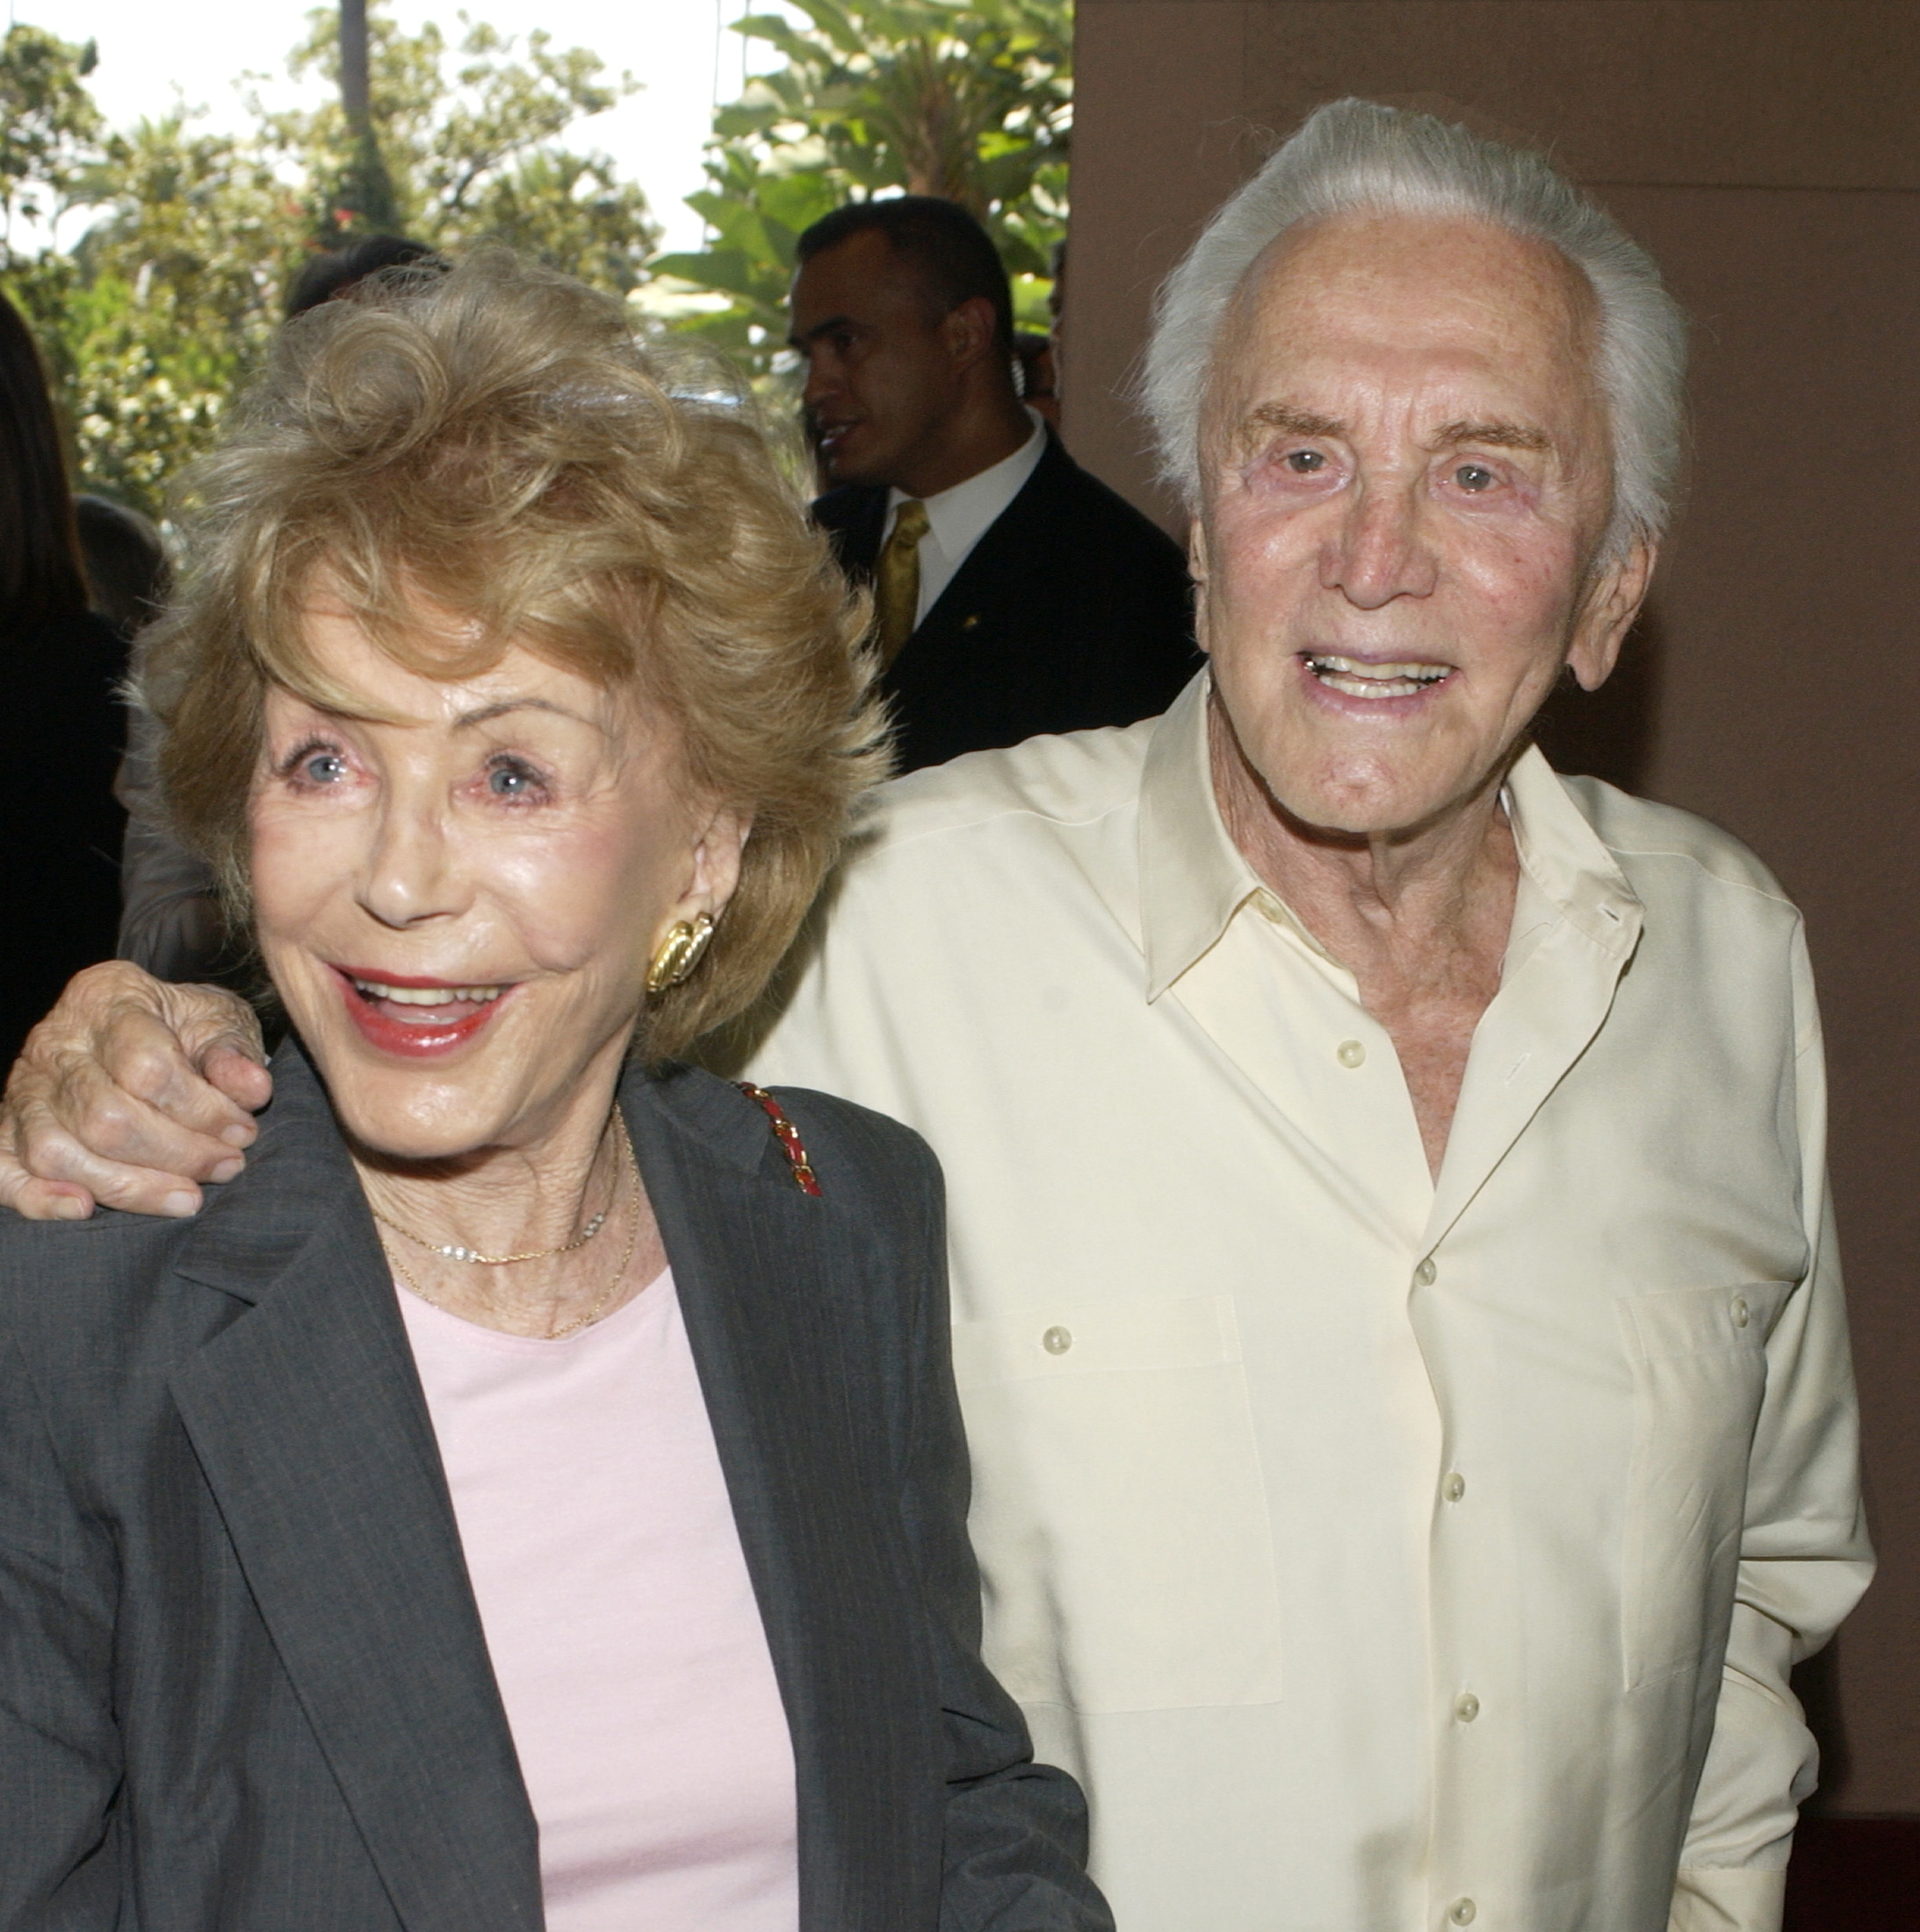 Actor Kirk Douglas (R) and his wife Anne arrive for Hollywood Foreign Press Association annual installation luncheon in Beverly Hills, California, August 11, 2004. - RTXMT7F